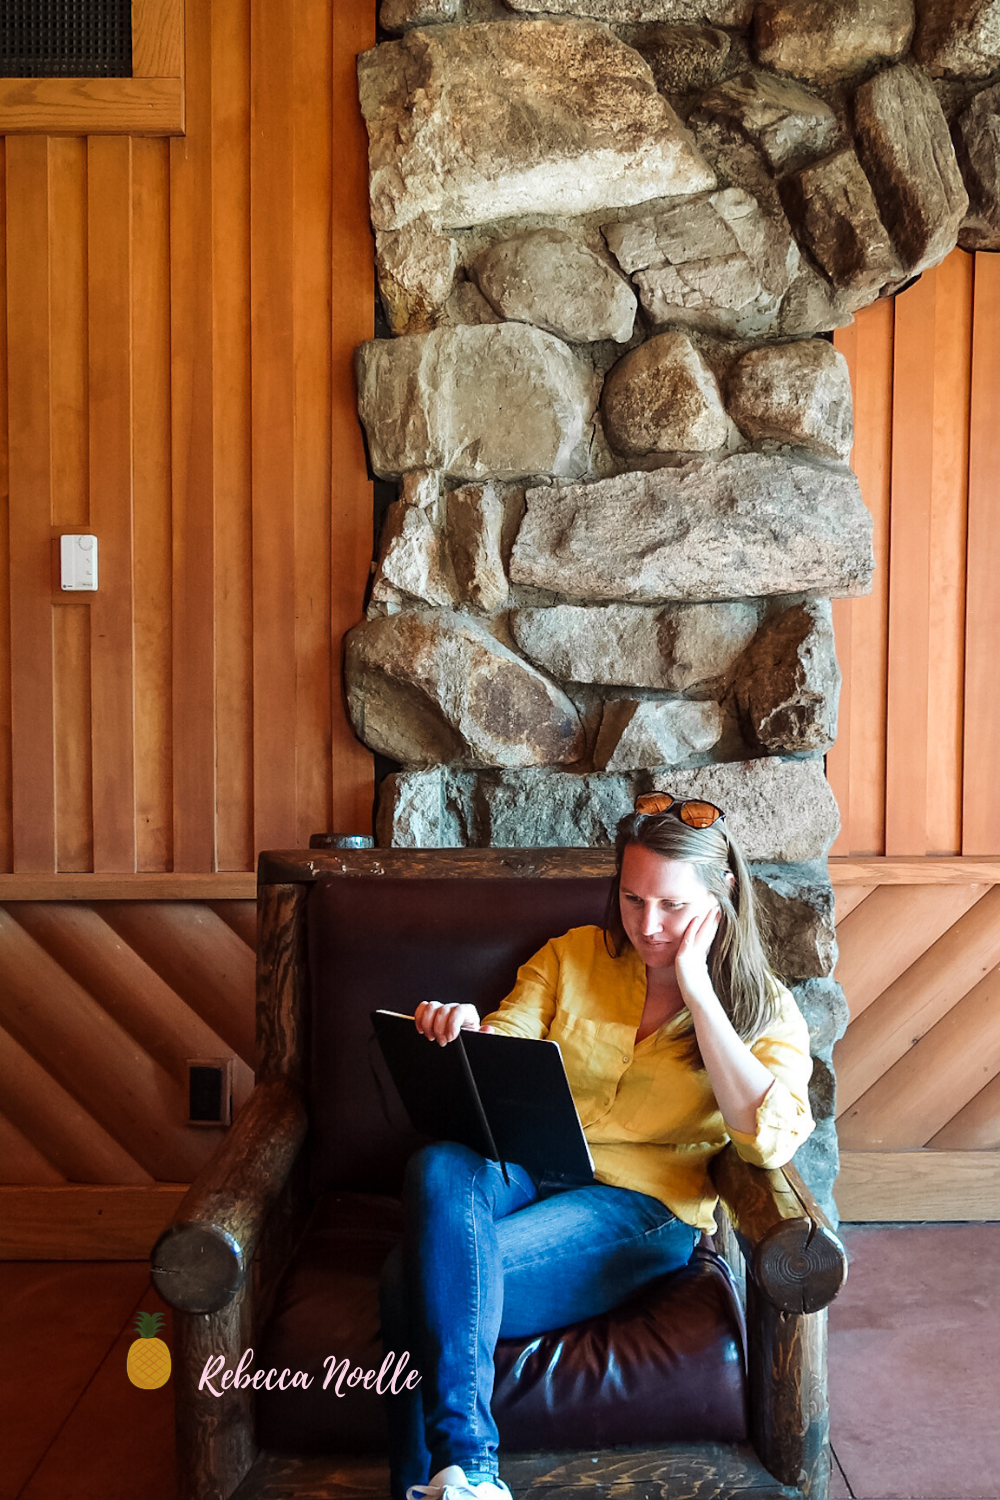 Visit Bear Mountain Inn and enjoy the Adirondack style felt in all the details in the space.